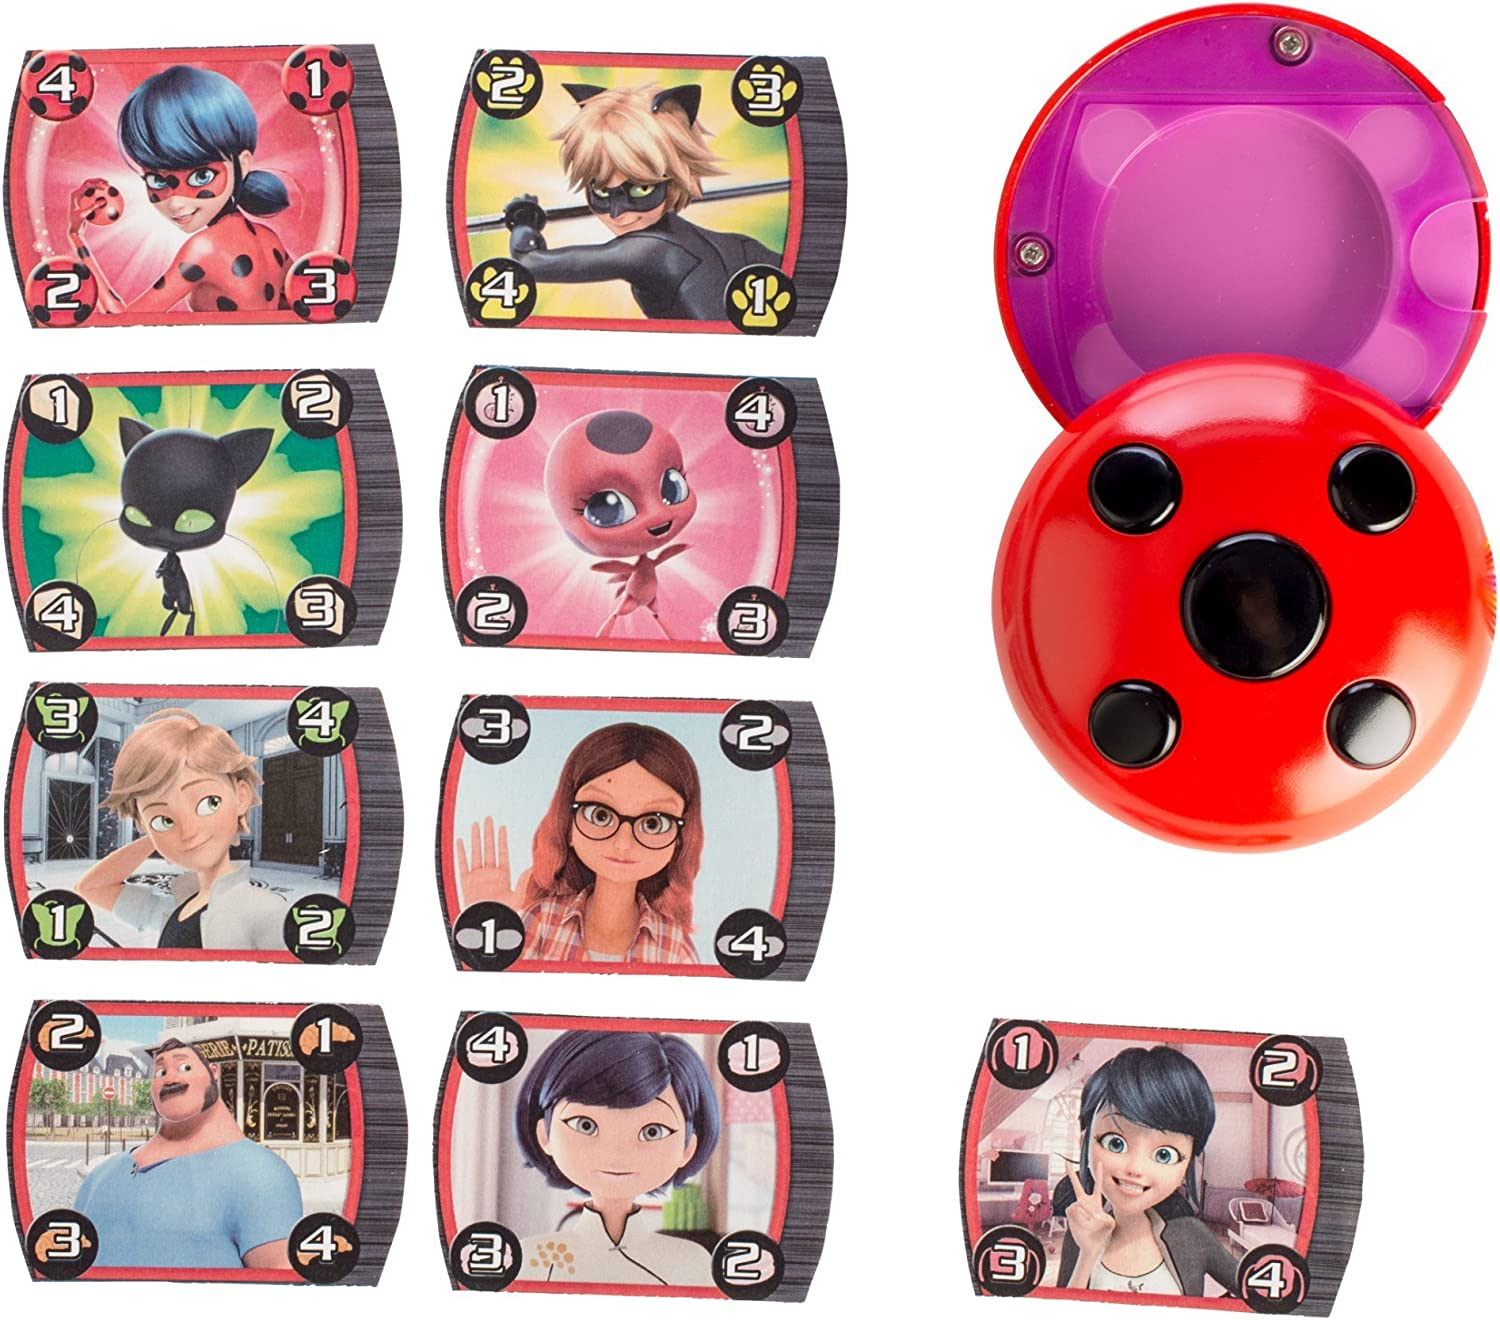 Max 56% OFF Miraculous Compact Caller Clearance SALE! Limited time!